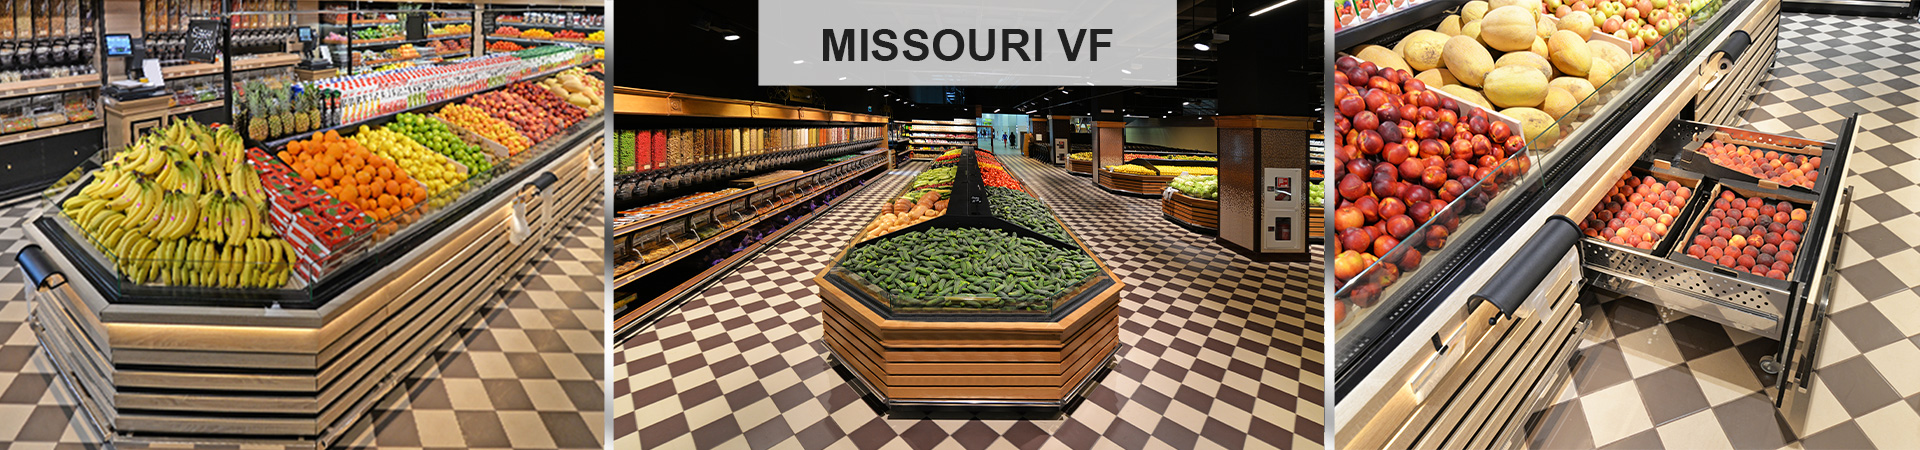 Specialized units for vegetables and fruit sales Missouri VF